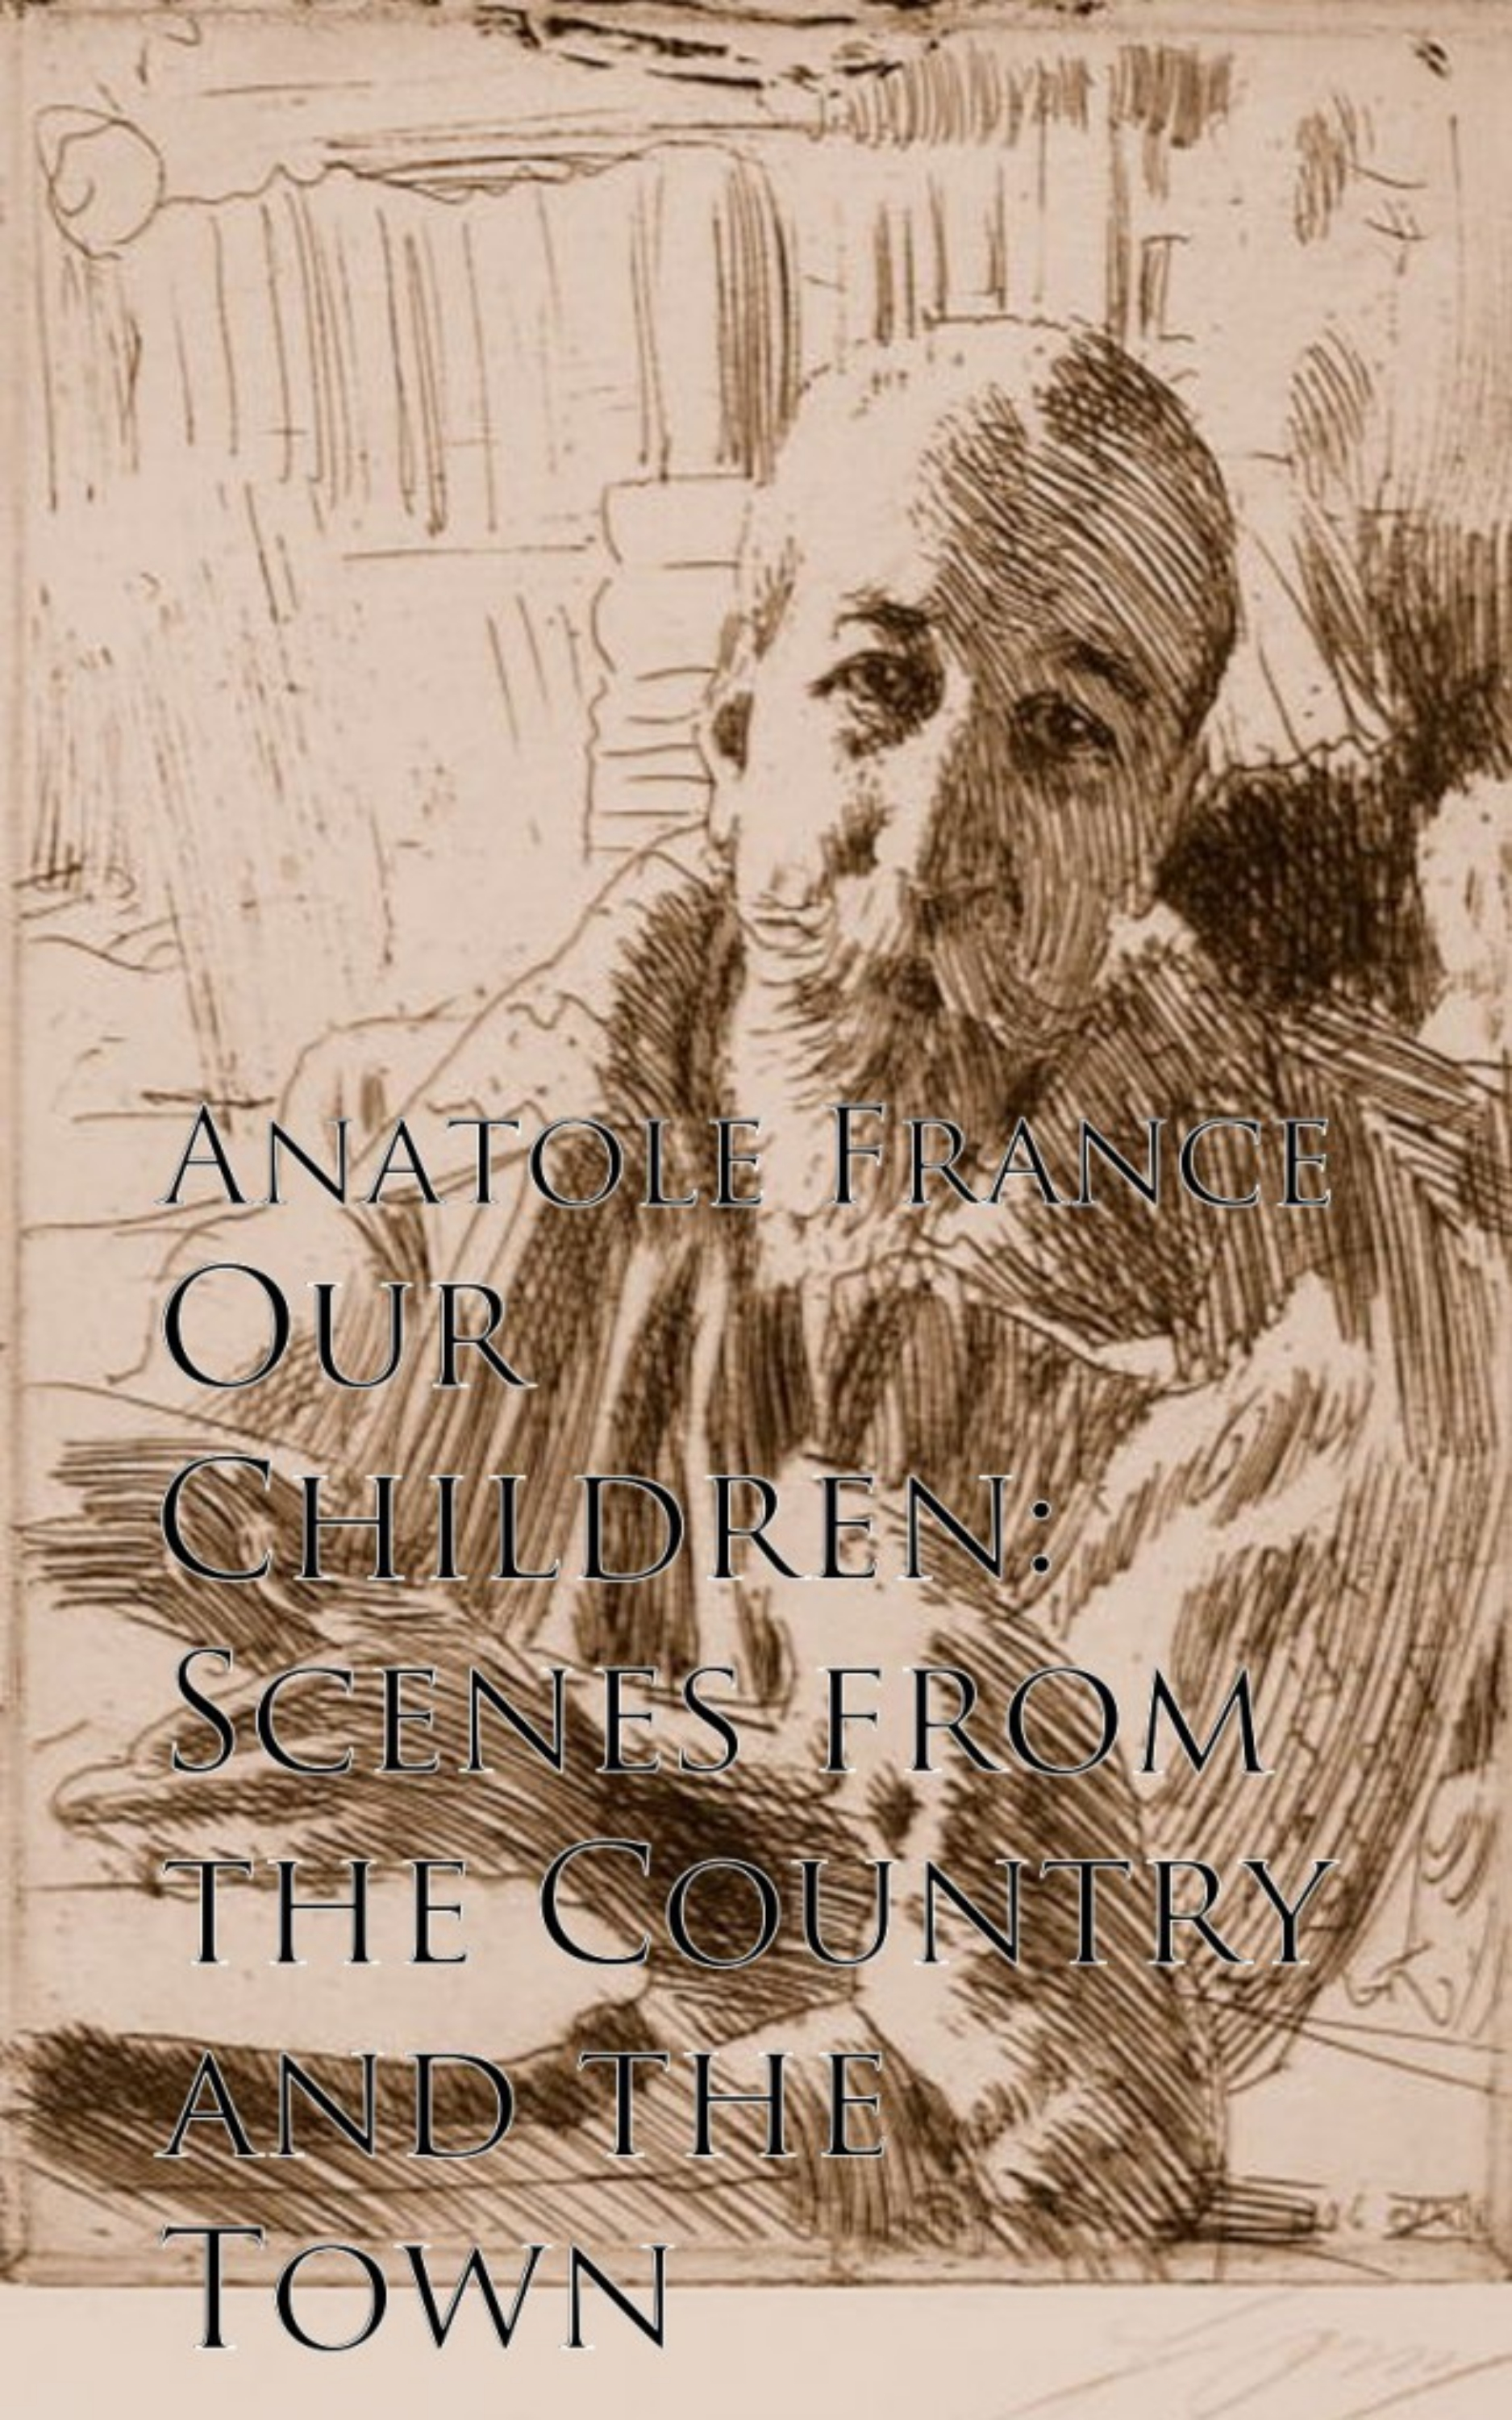 Anatole France Our Children: Scenes from the Country and the Town rdr cd [green a1 ] town mouse and the